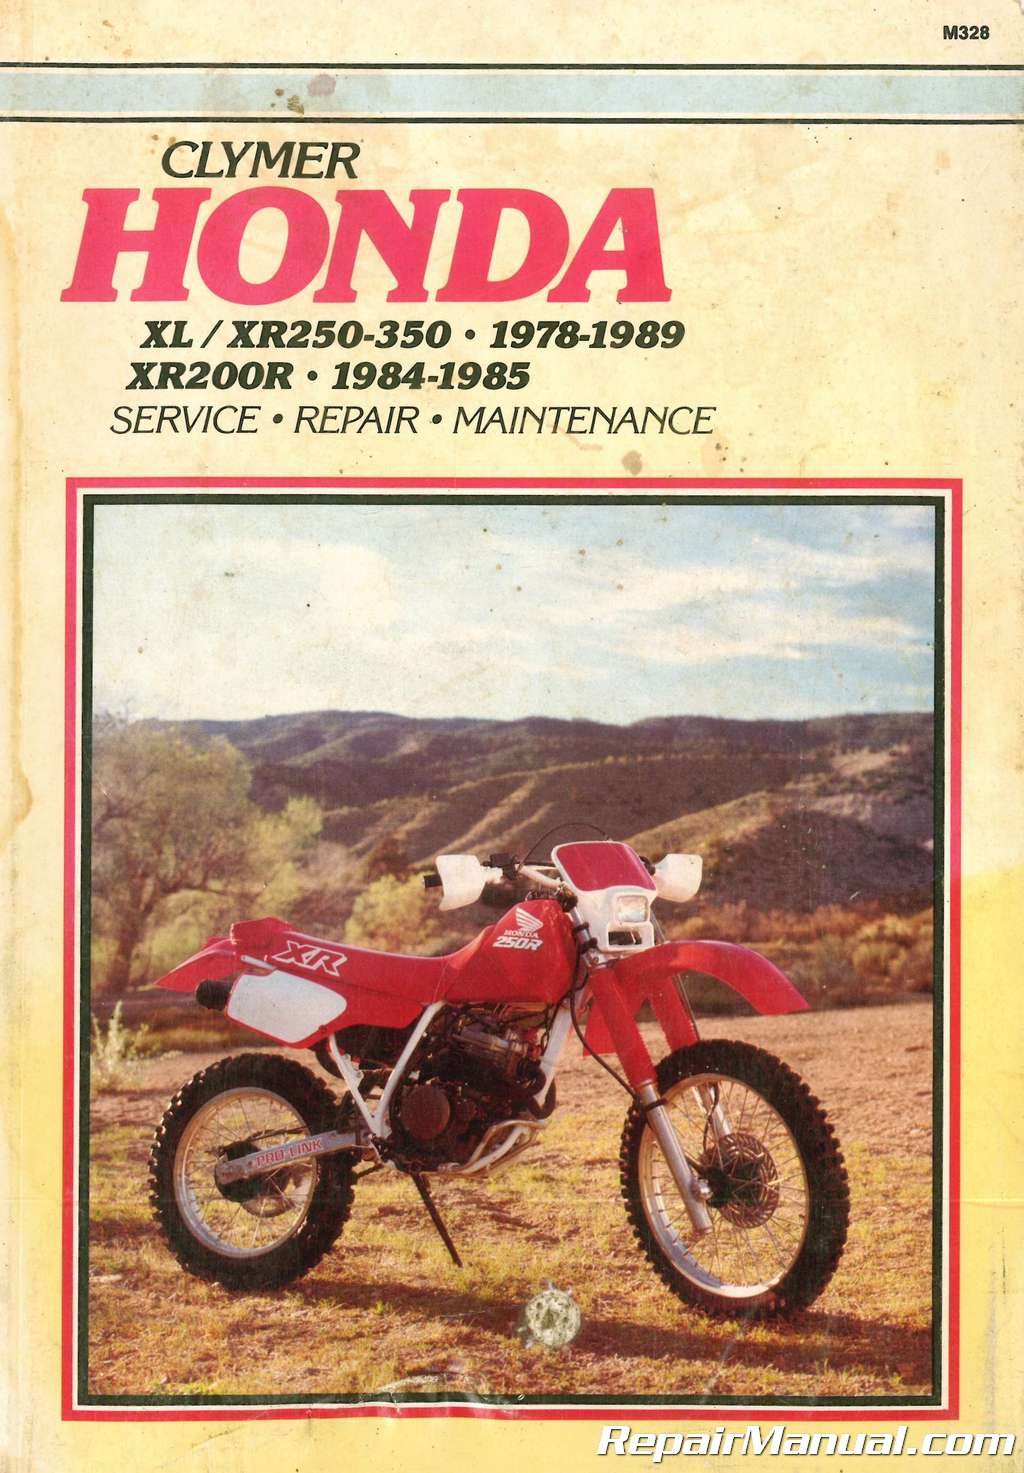 Powerplant Motorcycles Kx250 1989 Manual Guide